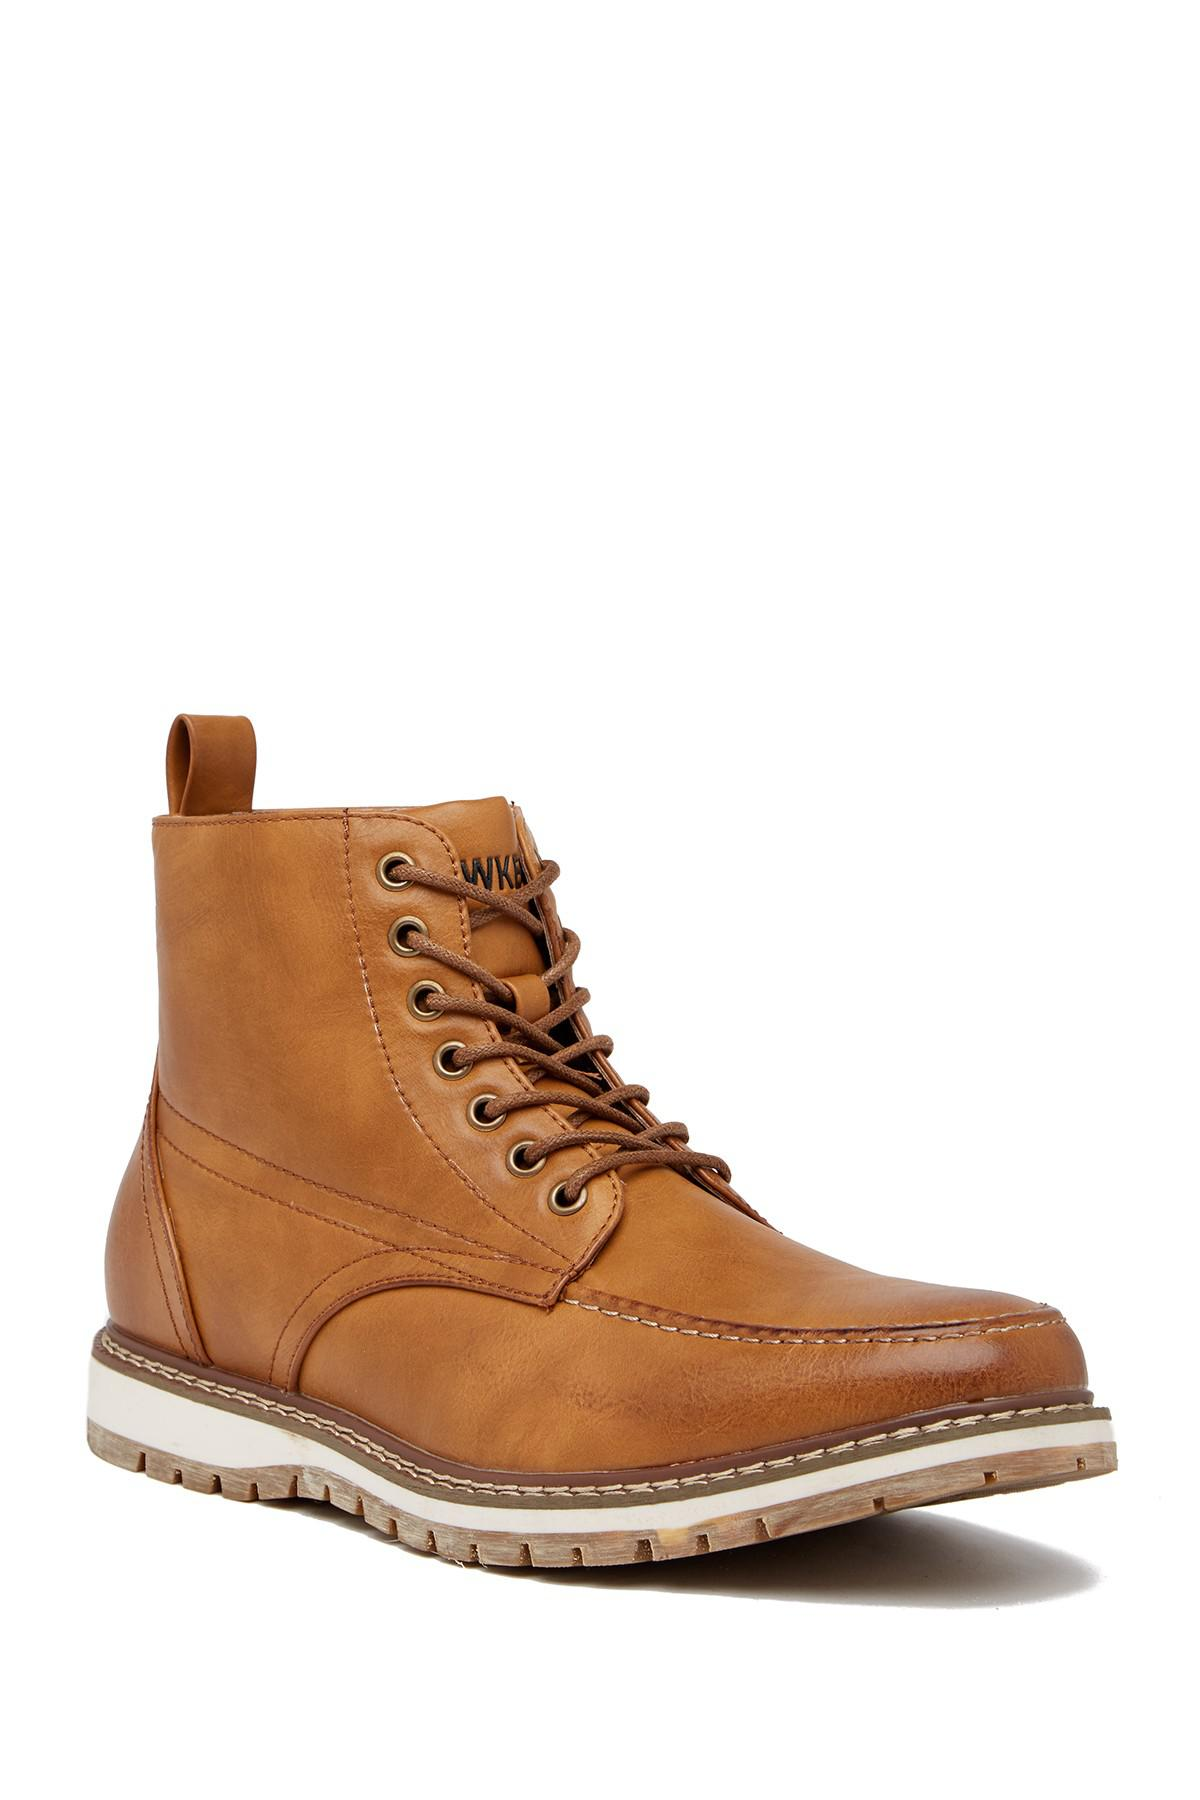 Hawke Amp Co Sierra Leather Boot In Brown For Men Lyst